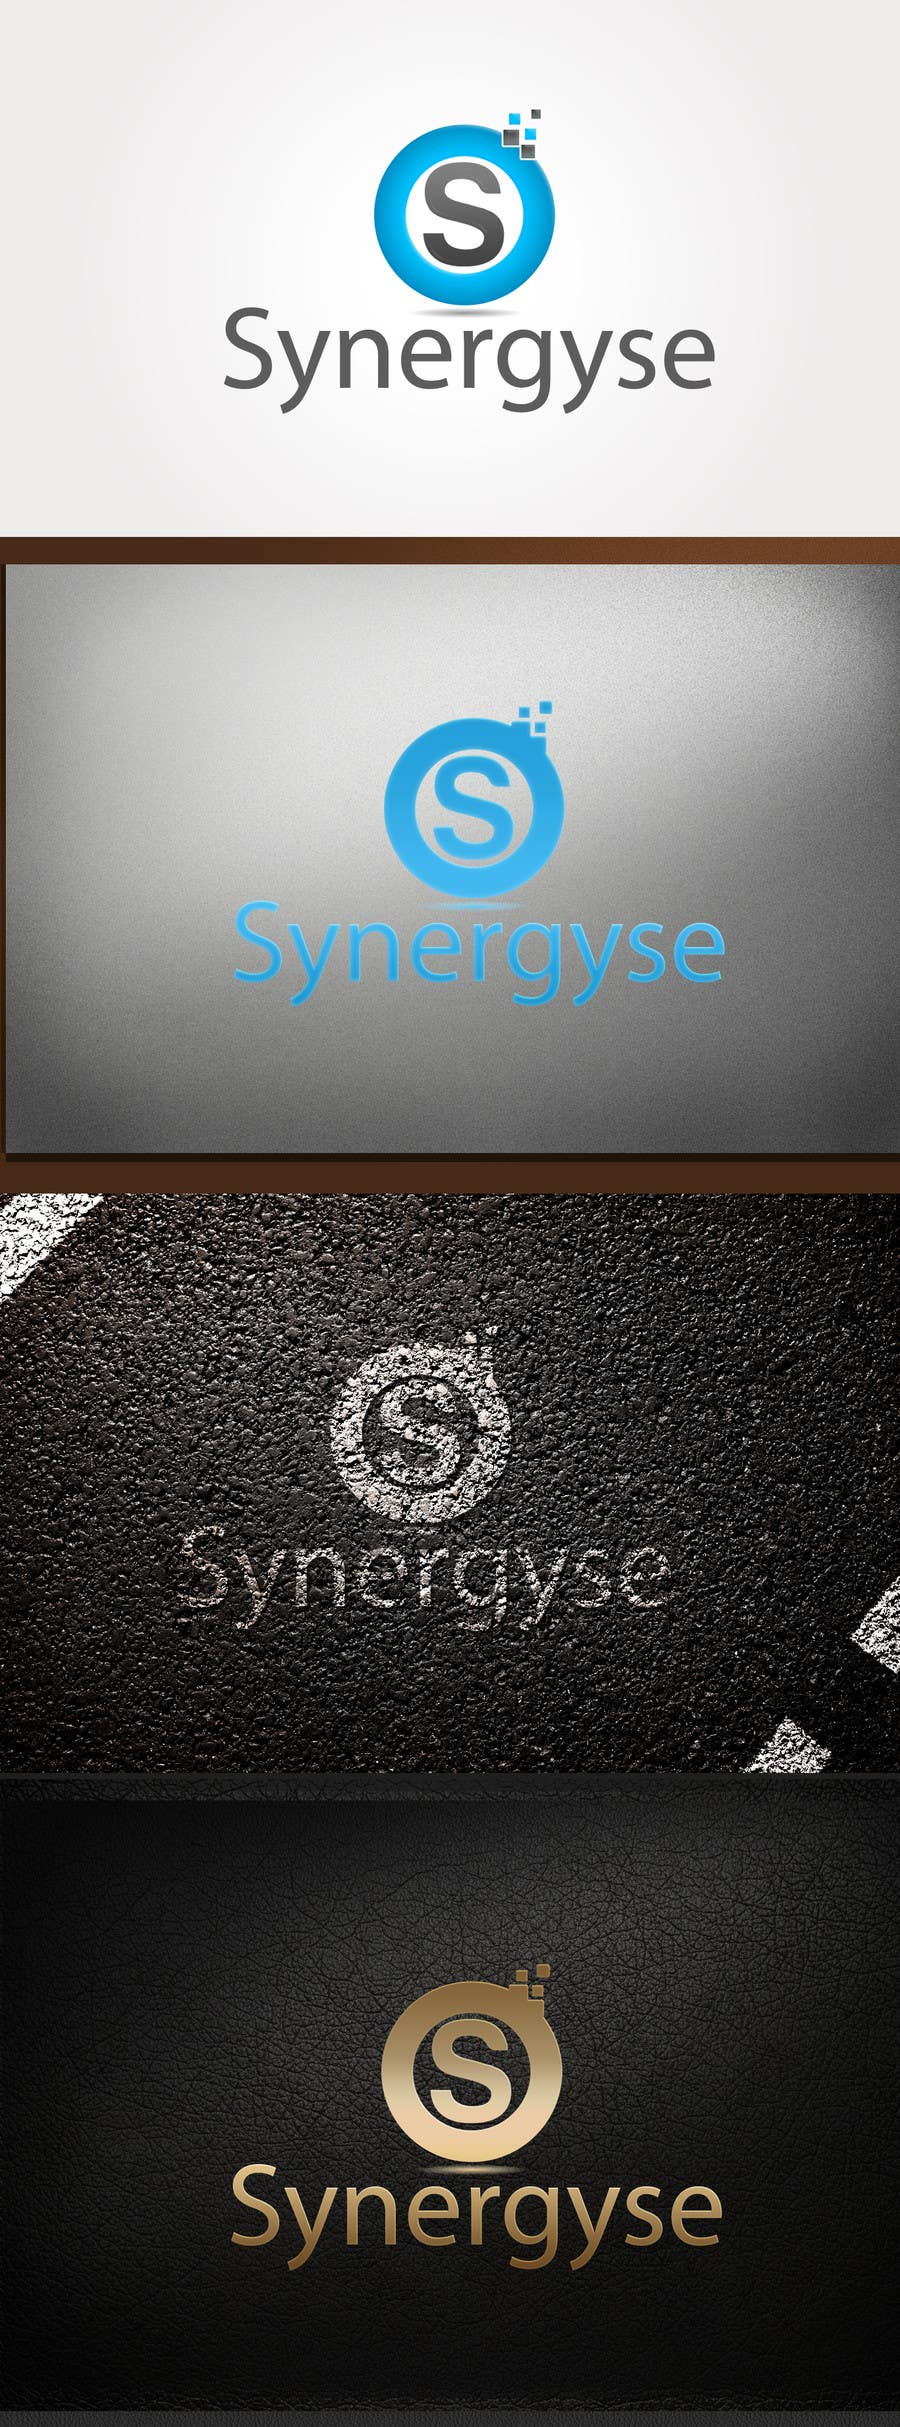 Proposition n°                                        79                                      du concours                                         Logo Design for Synergyse